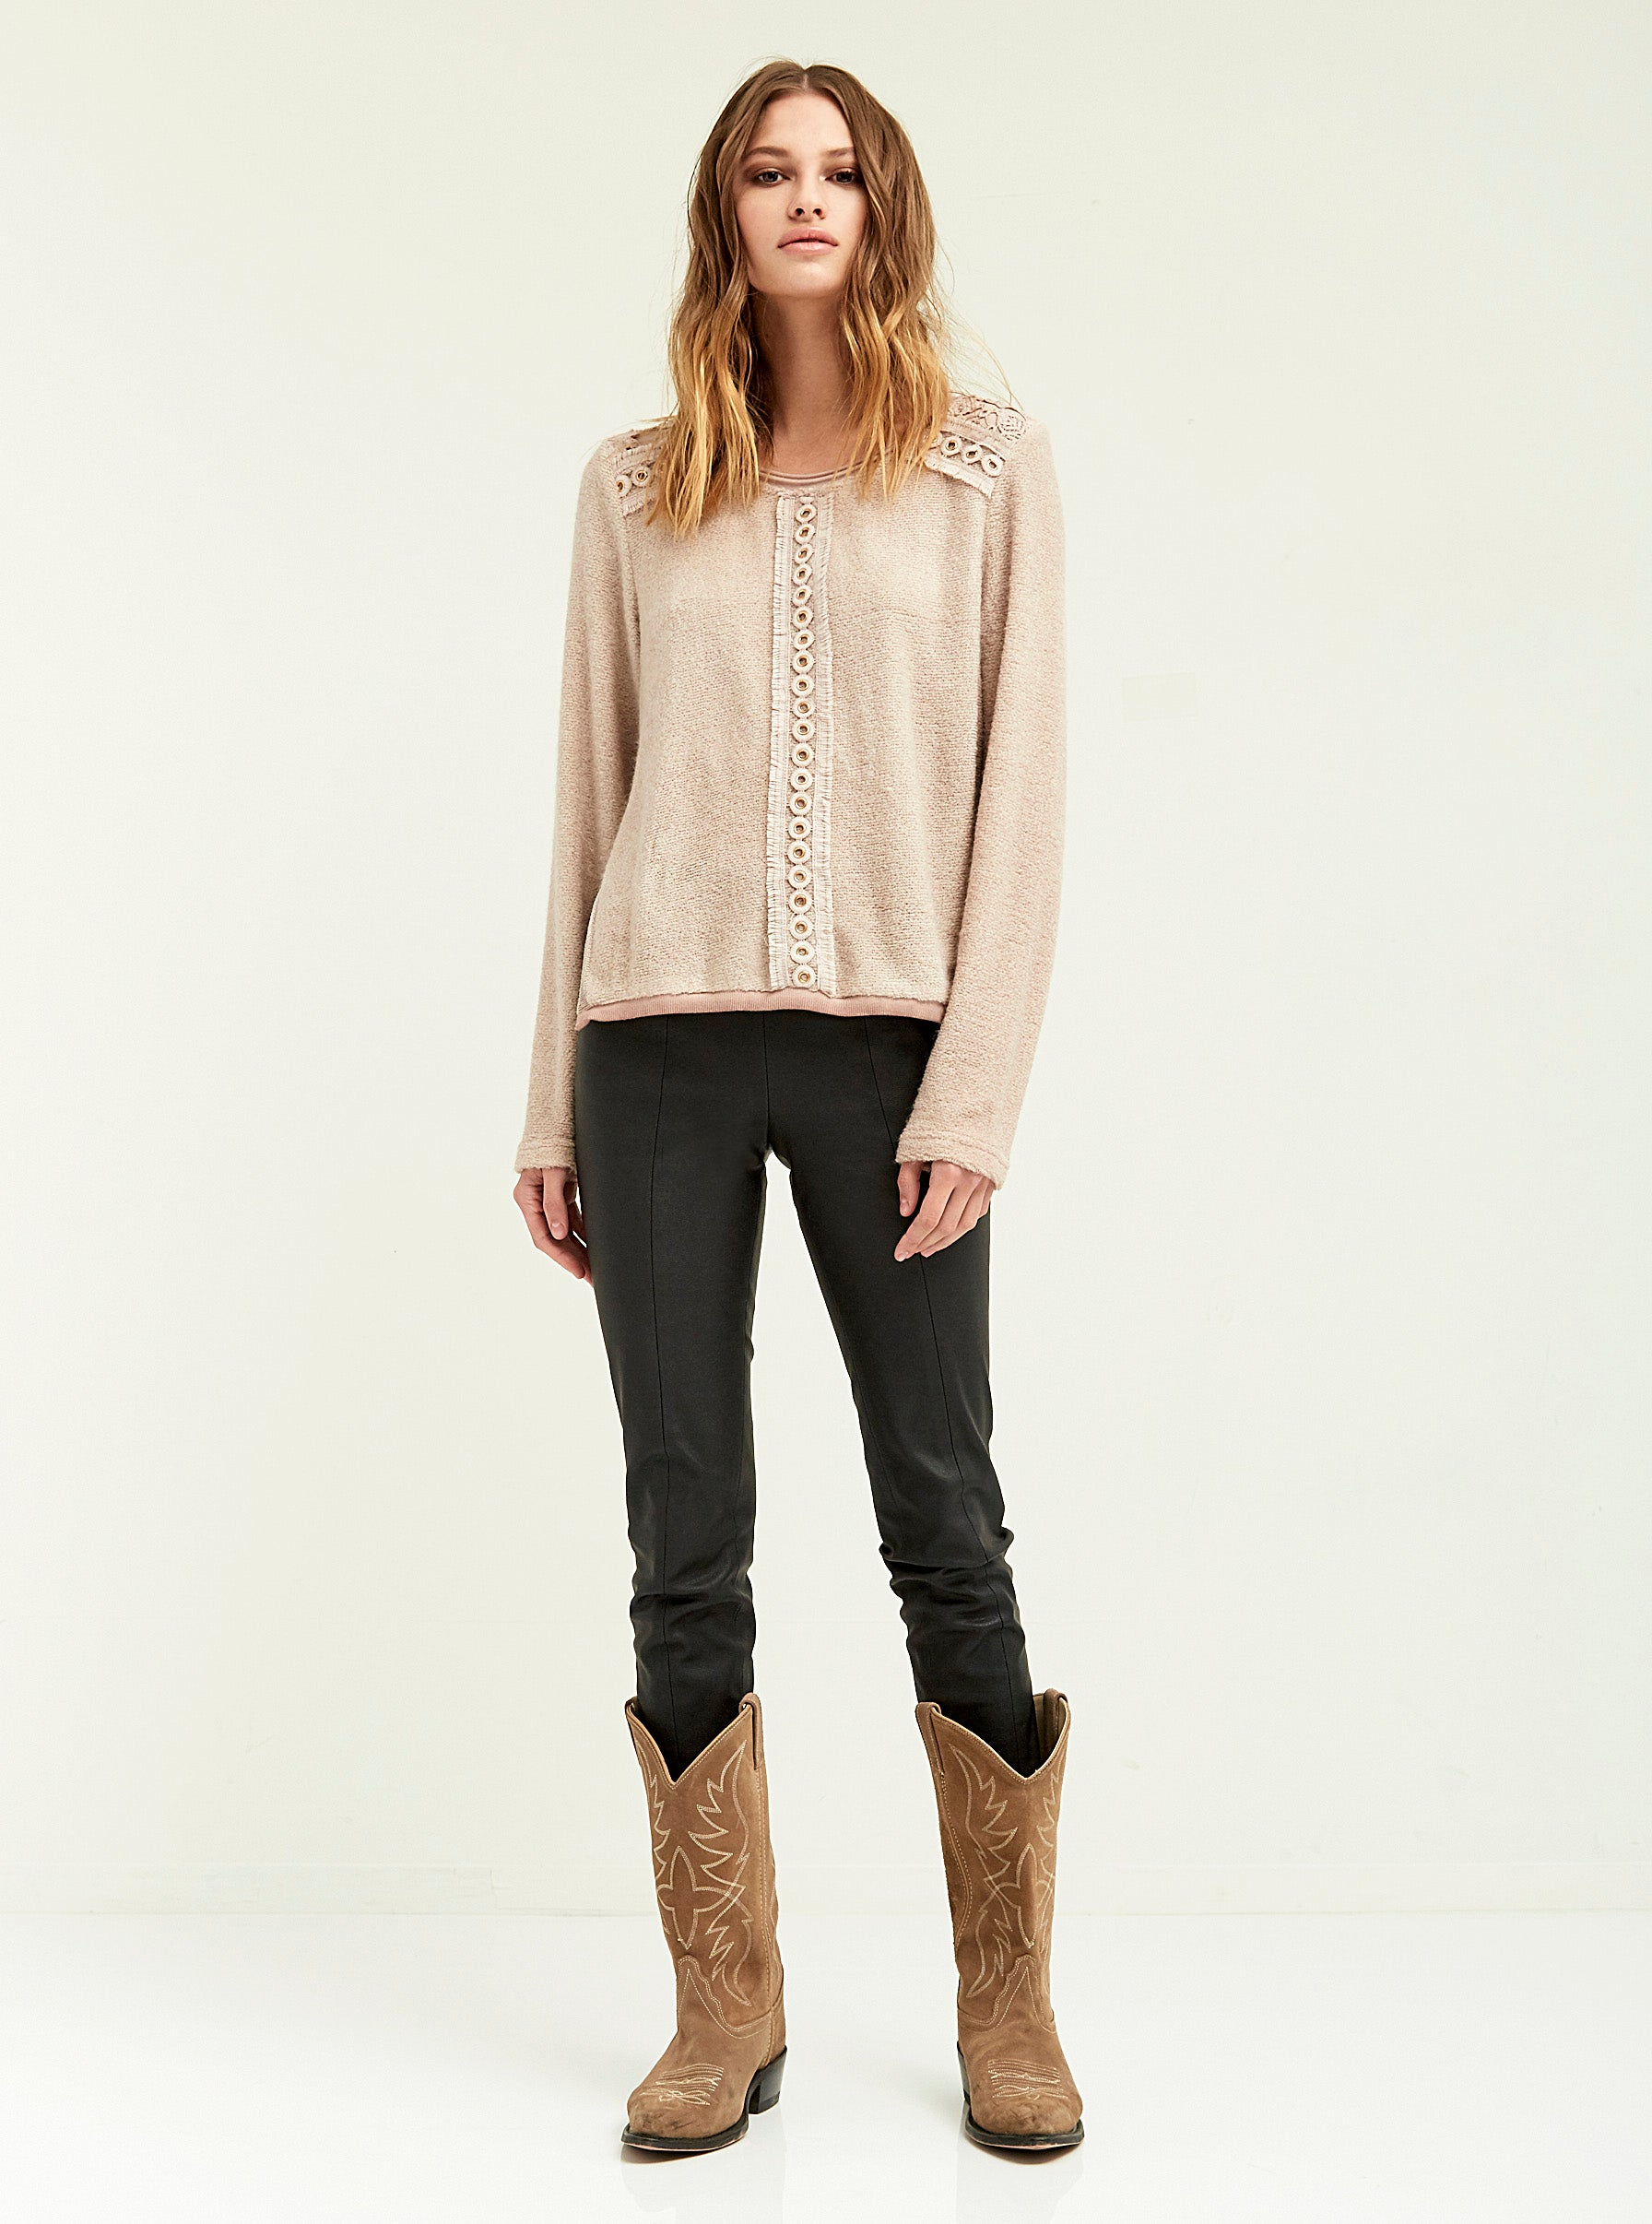 Duo Lace Trimmed Sweater - Boundless North Online Store